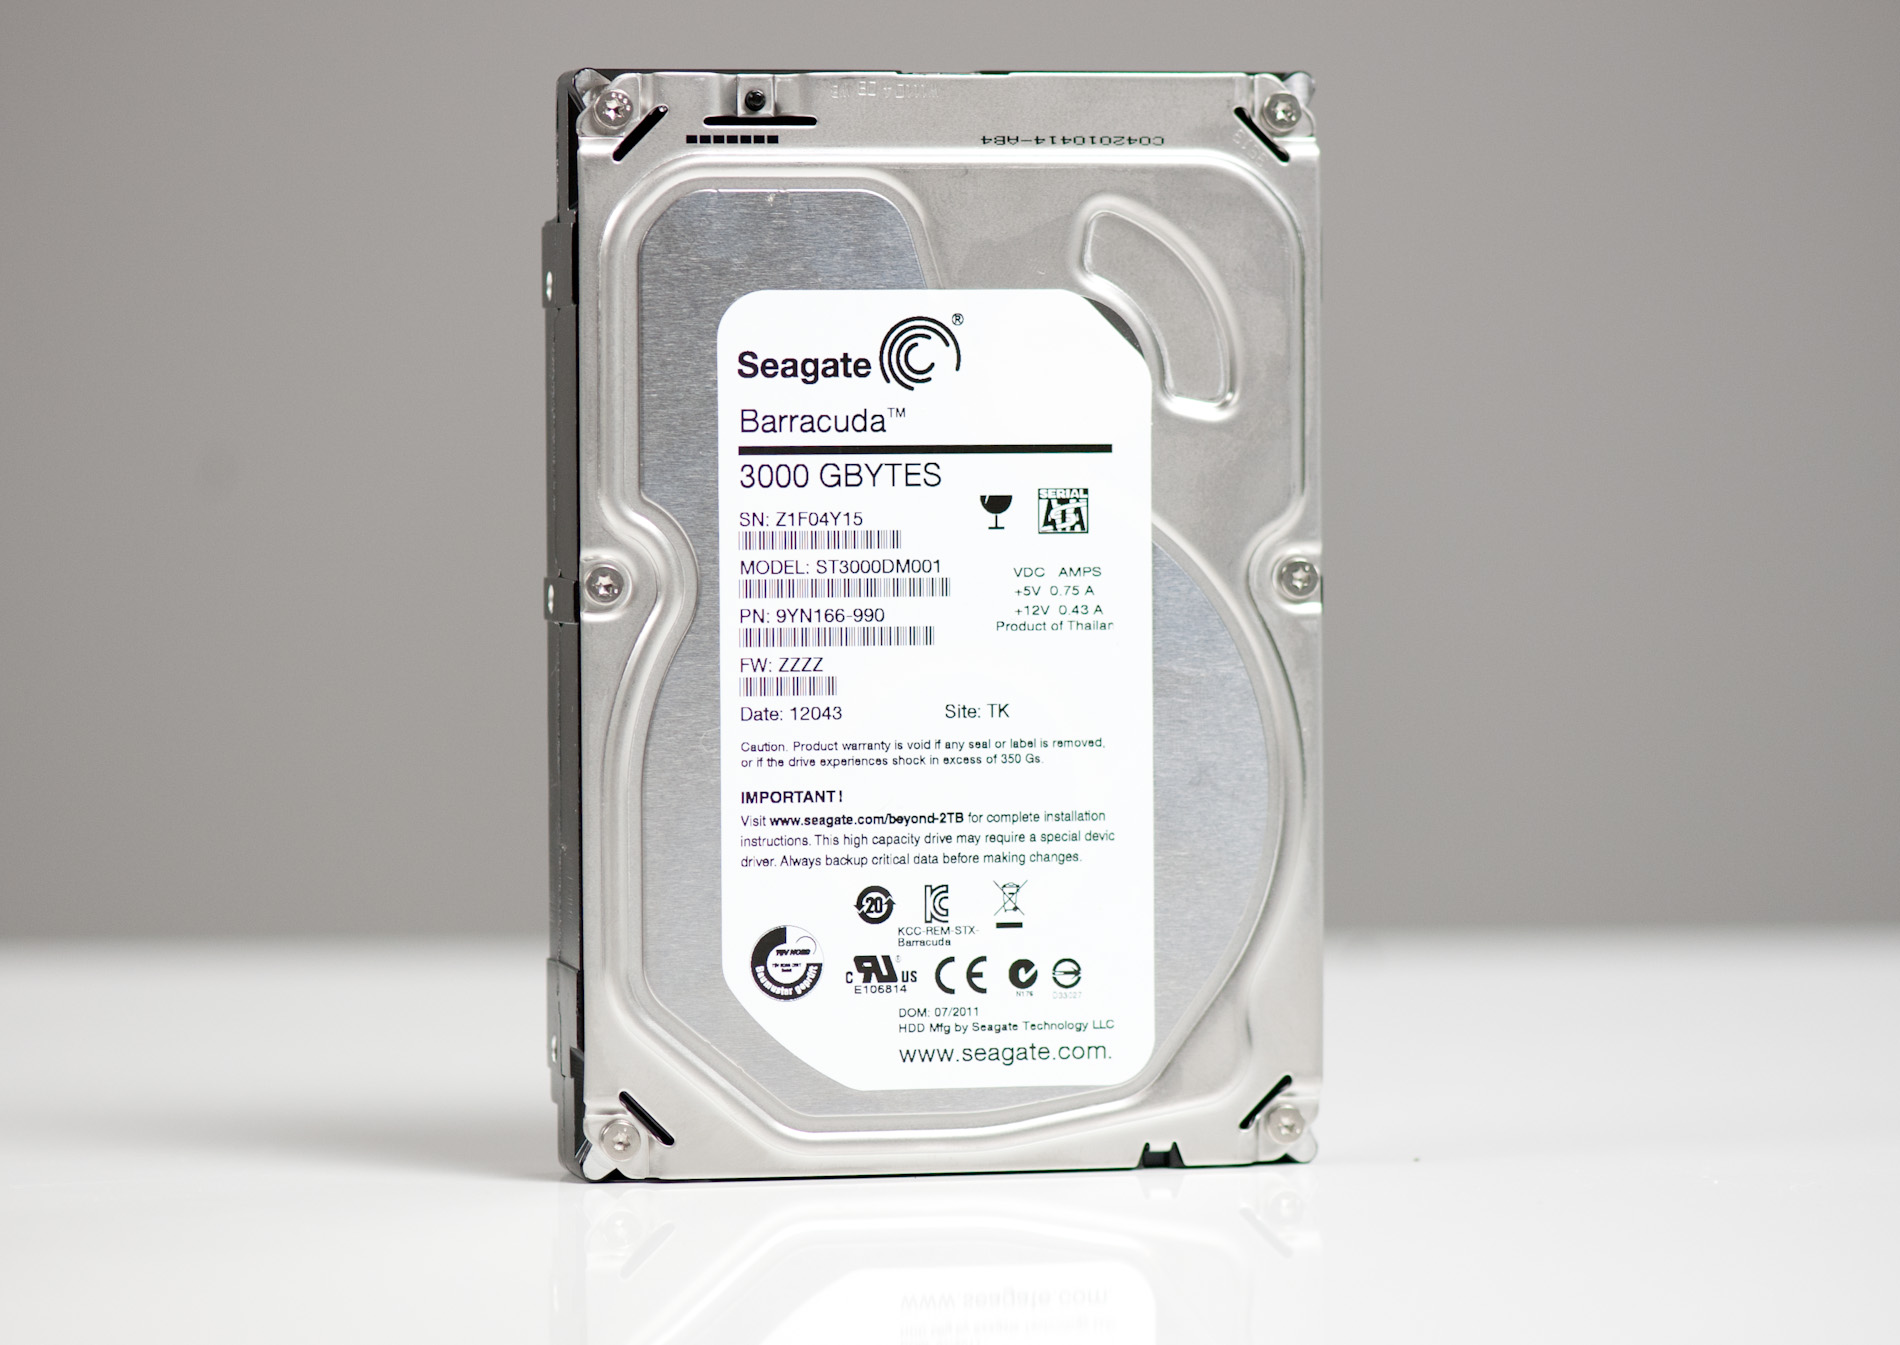 SEAGATE BARRACUDA 3000GB DRIVER FOR WINDOWS 10